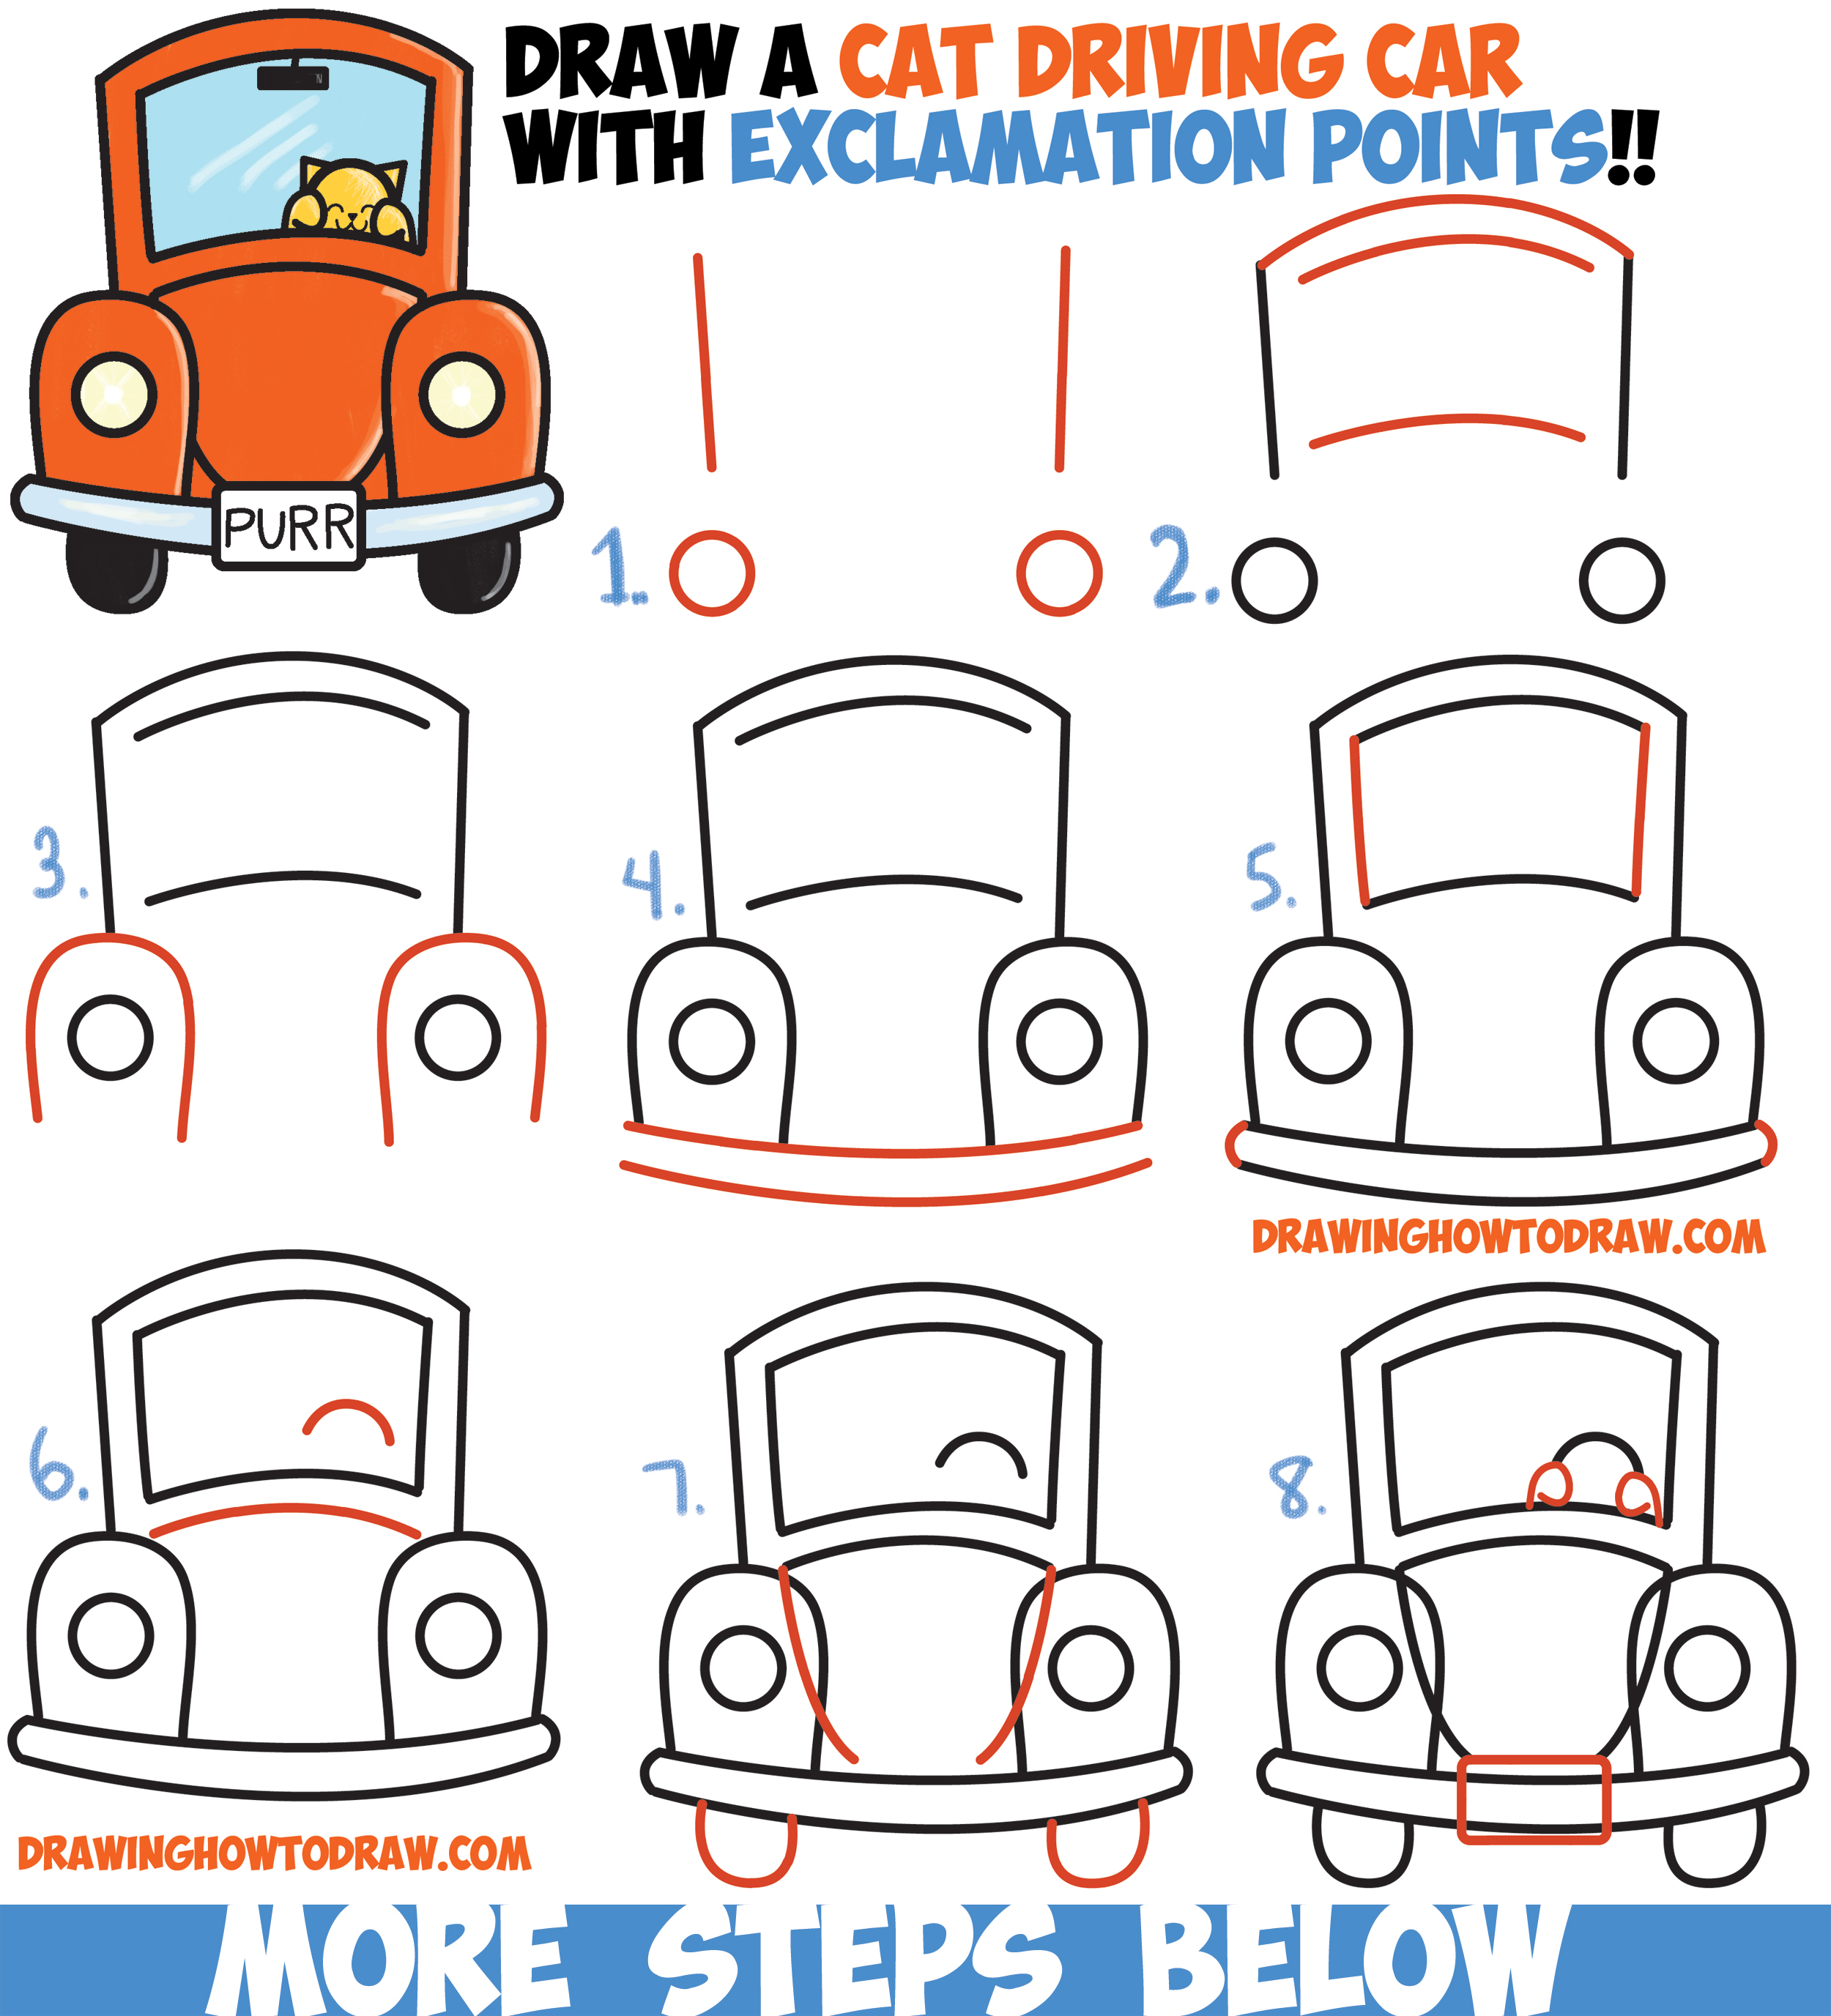 How To Draw Cute Cartoon Cat Driving A Car From Exclamation